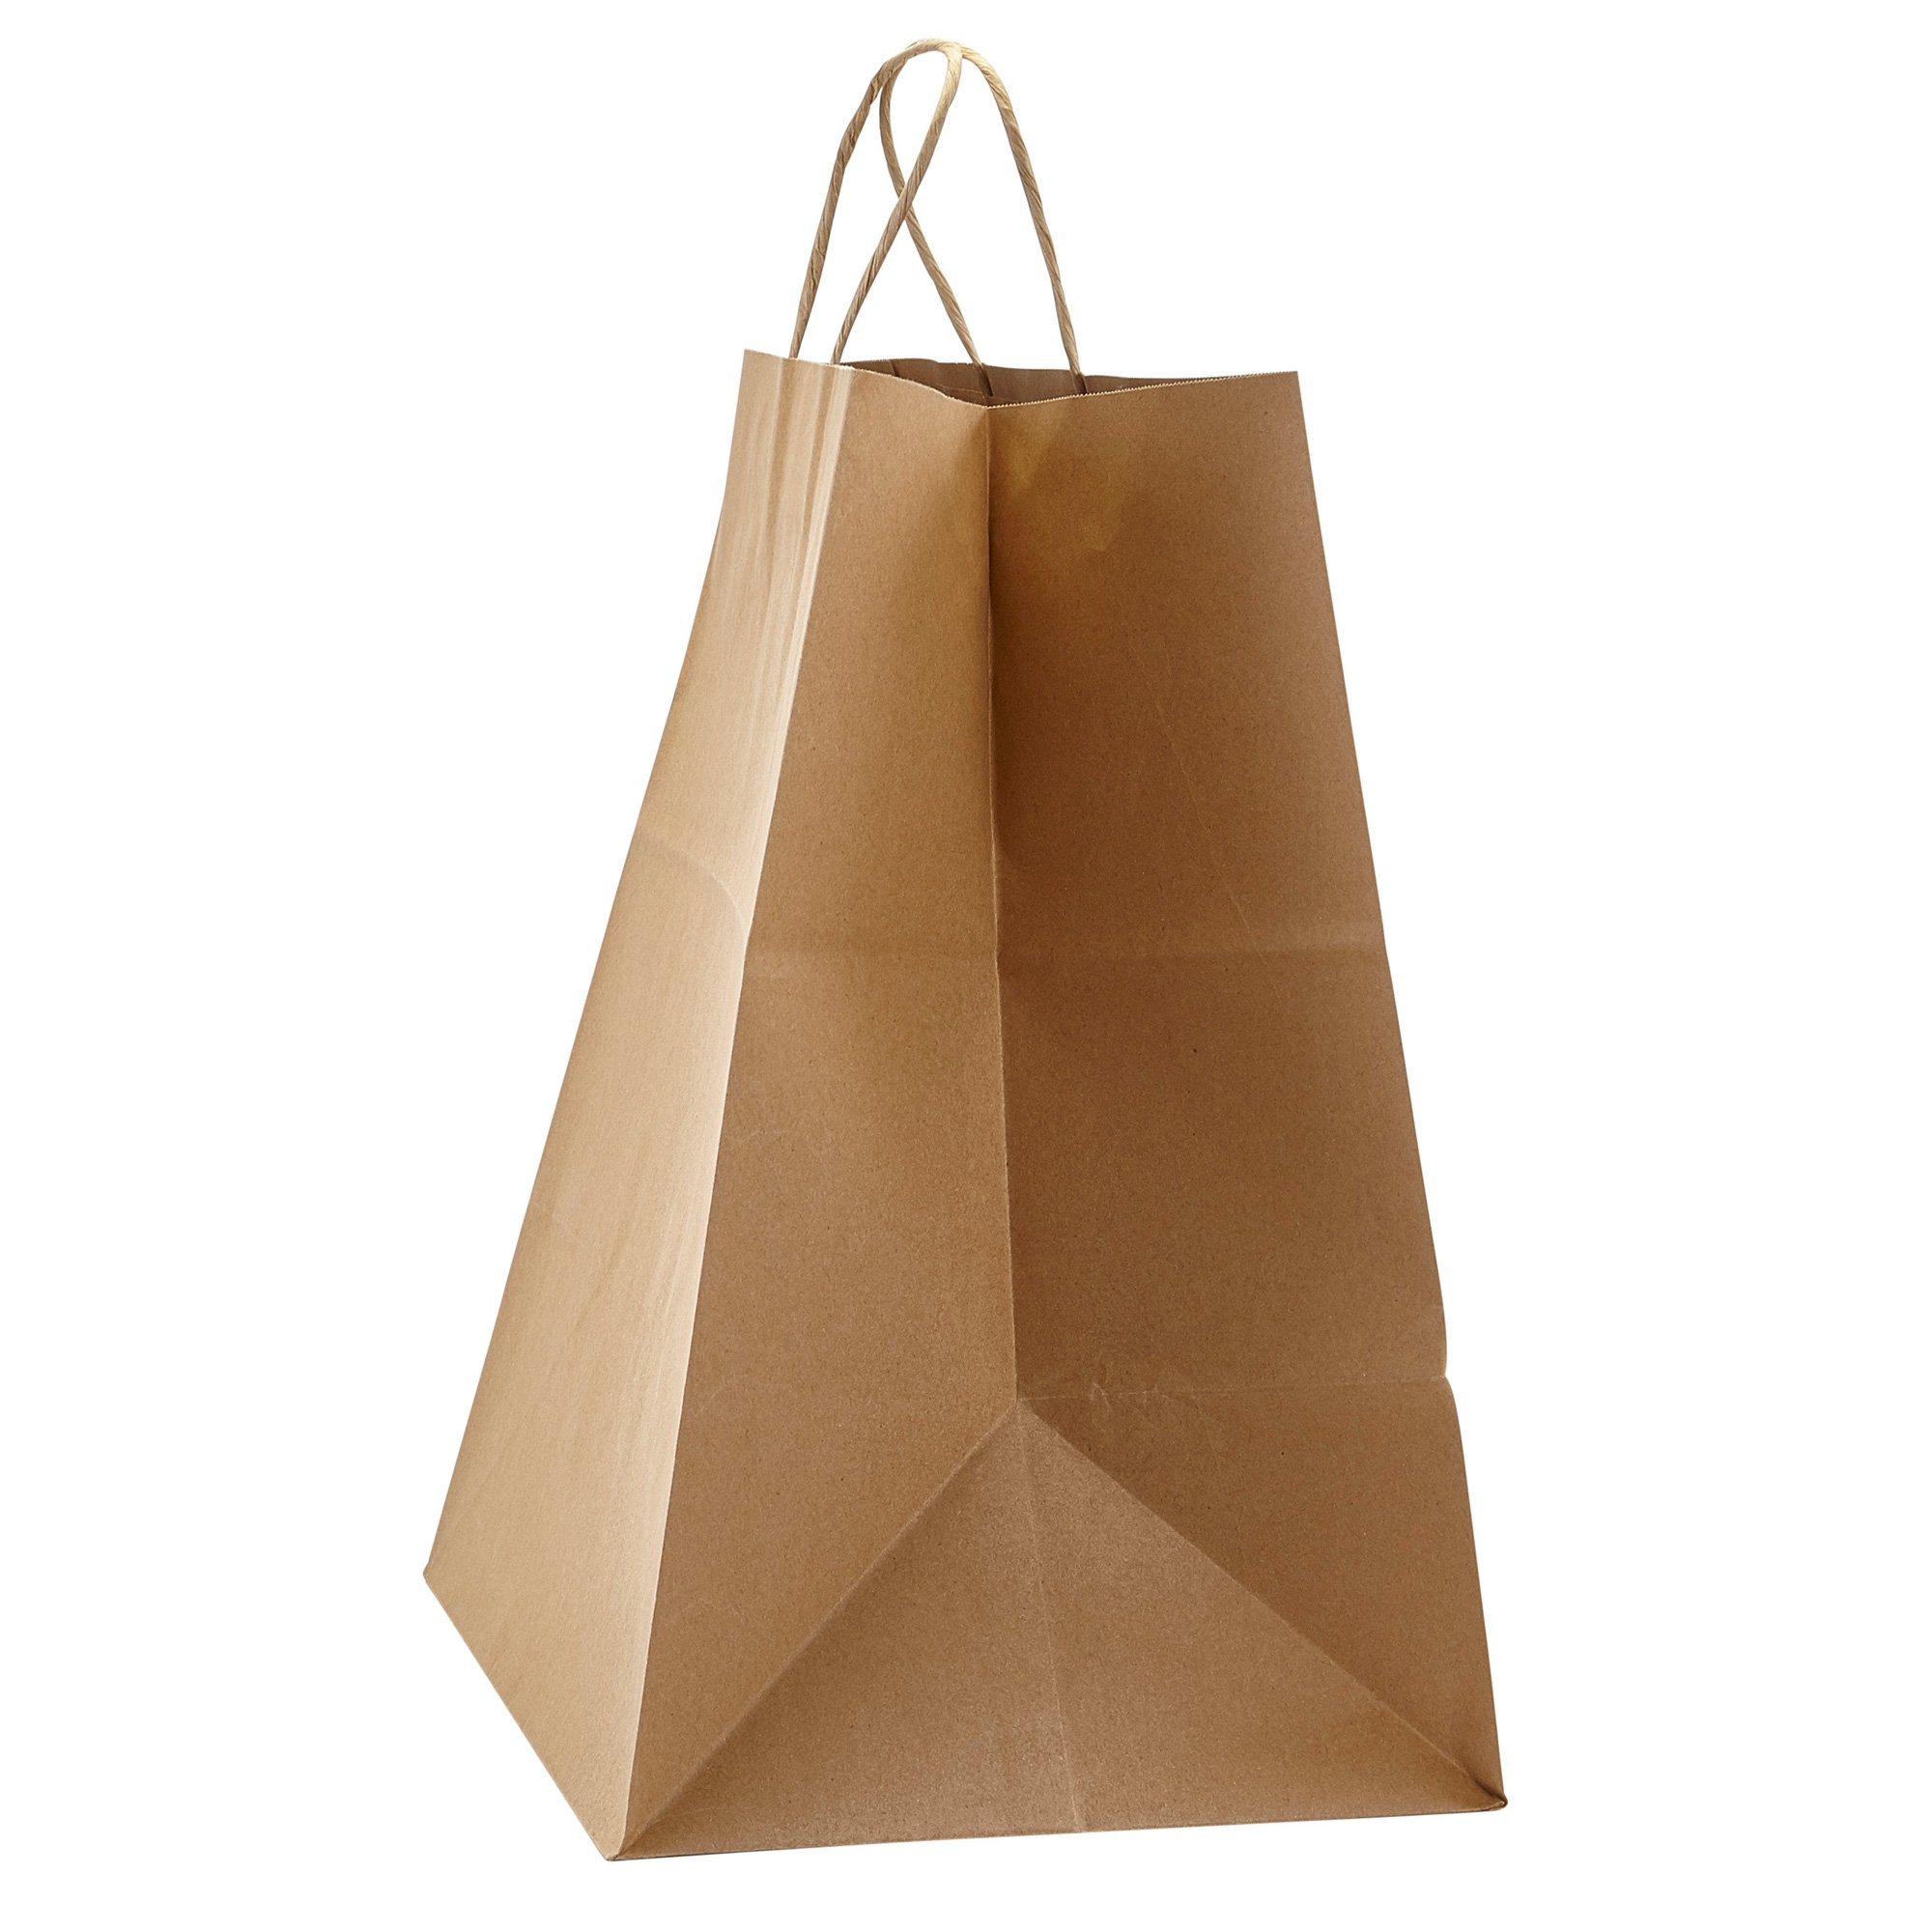 PTP - 14'' x 9.75'' x 15.5'' Natural Kraft Paper Gift Tote Bags - 200 count  Perfect for Birthdays, Weddings, Holidays and All Occasions   White or Natural Colors   Multiple Sizes by Prime Time Packaging Ltd (Image #4)